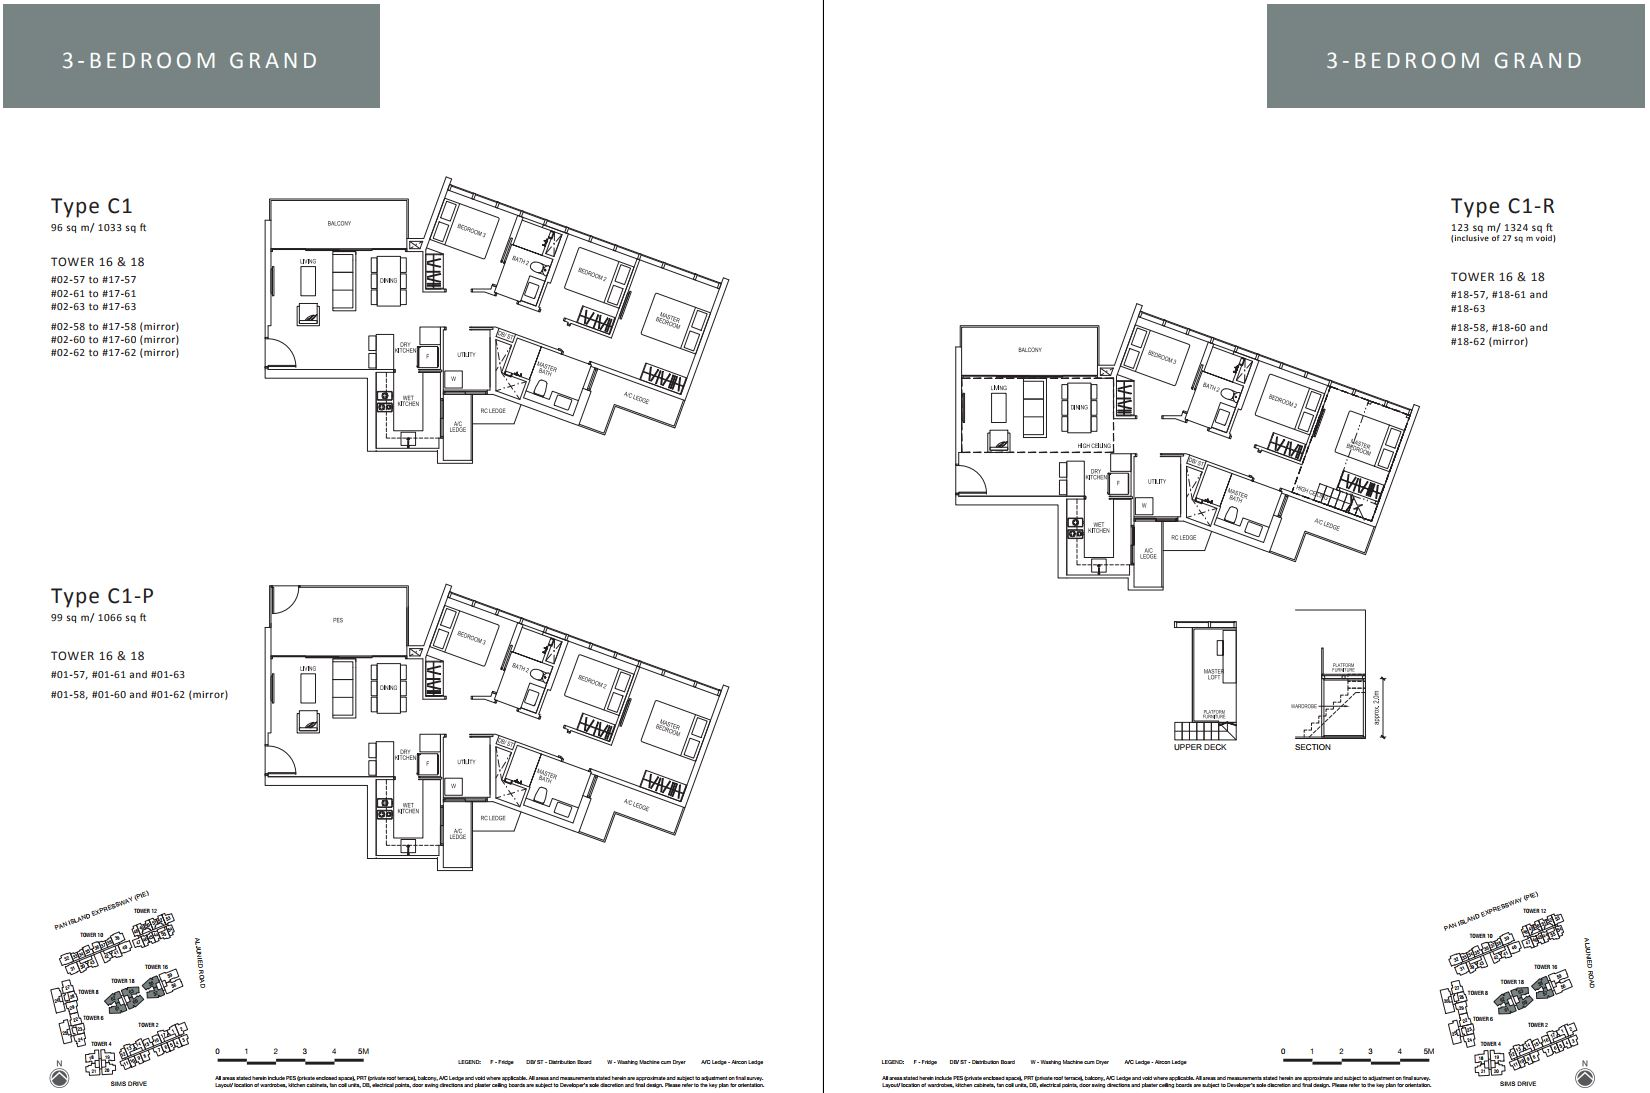 Sims Urban Oasis FloorPlan - 3 Bedroom Grand